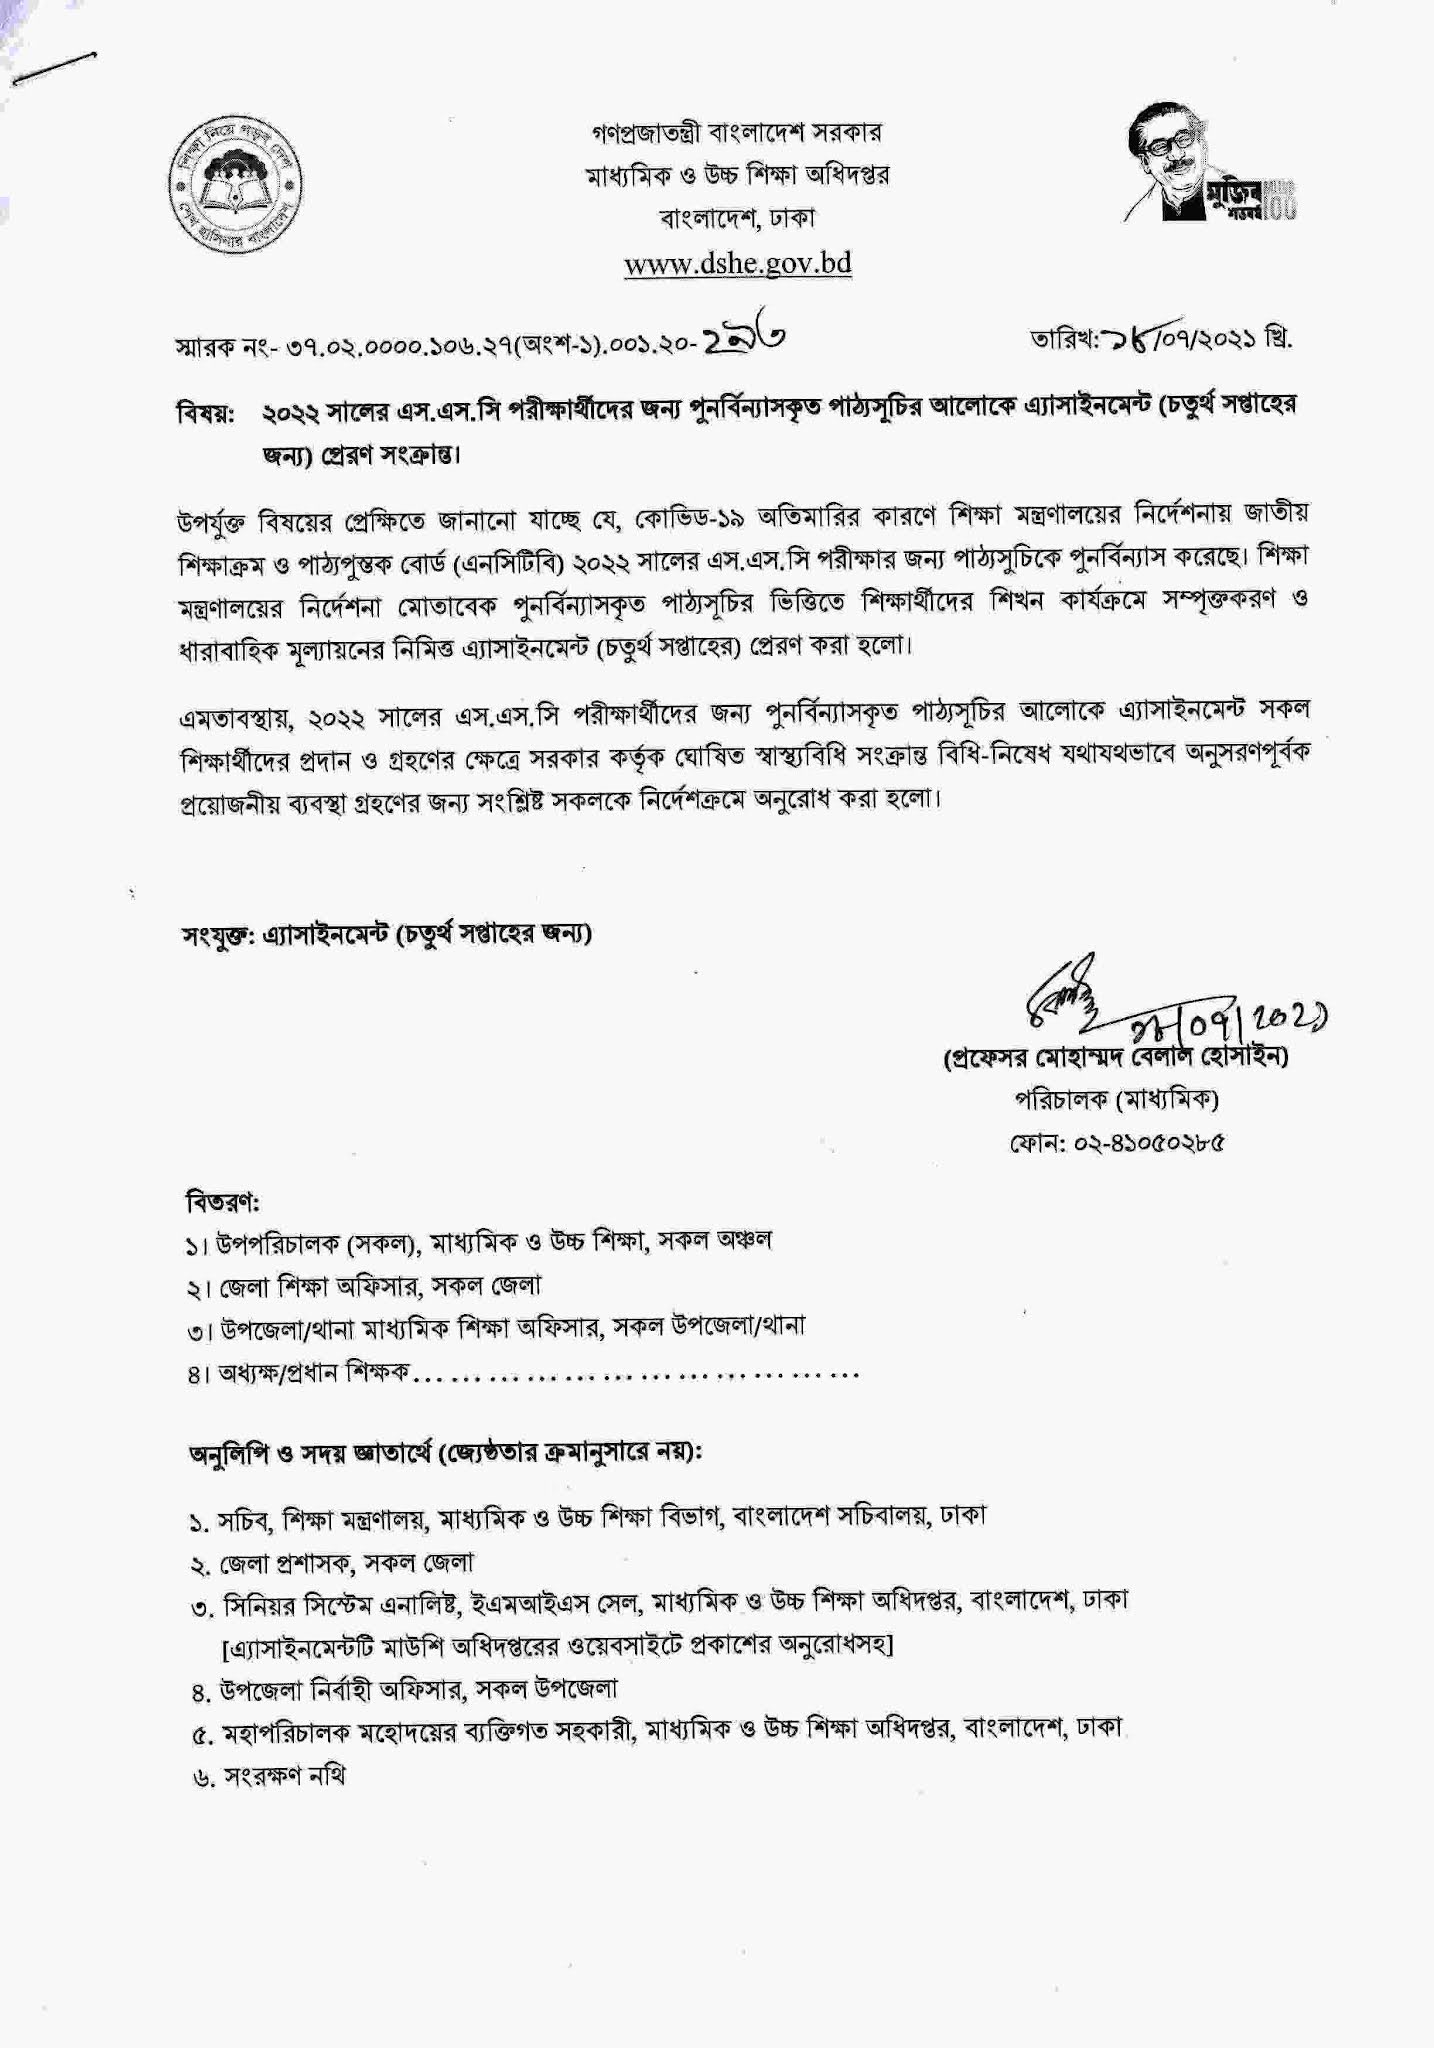 SSC Assignment 2021 4th Week Notice